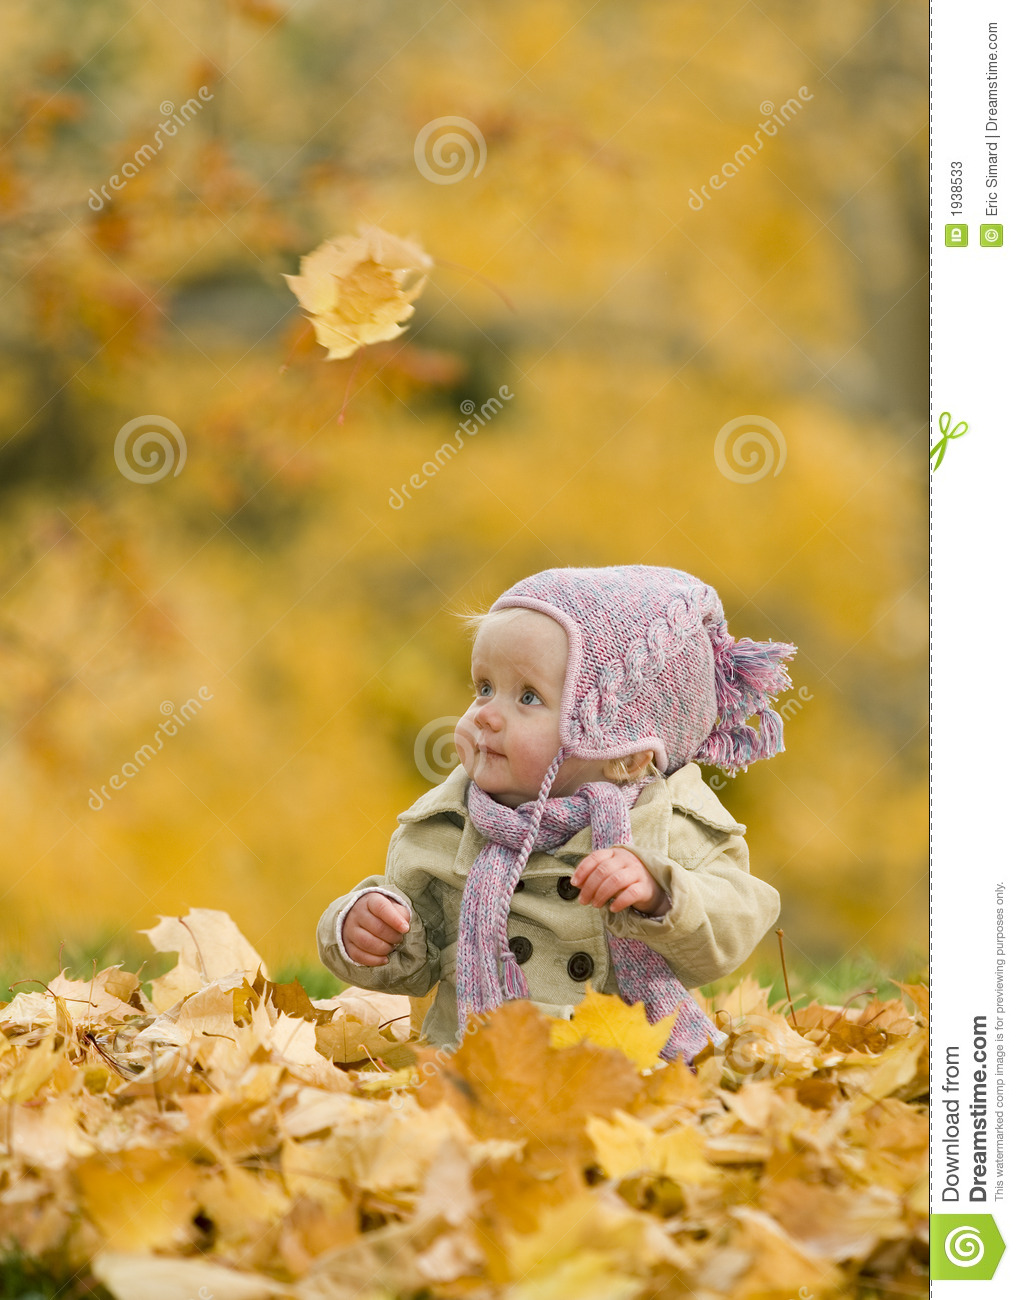 Baby In Autumn Leaves Stock Image Image Of Fall Outdoors